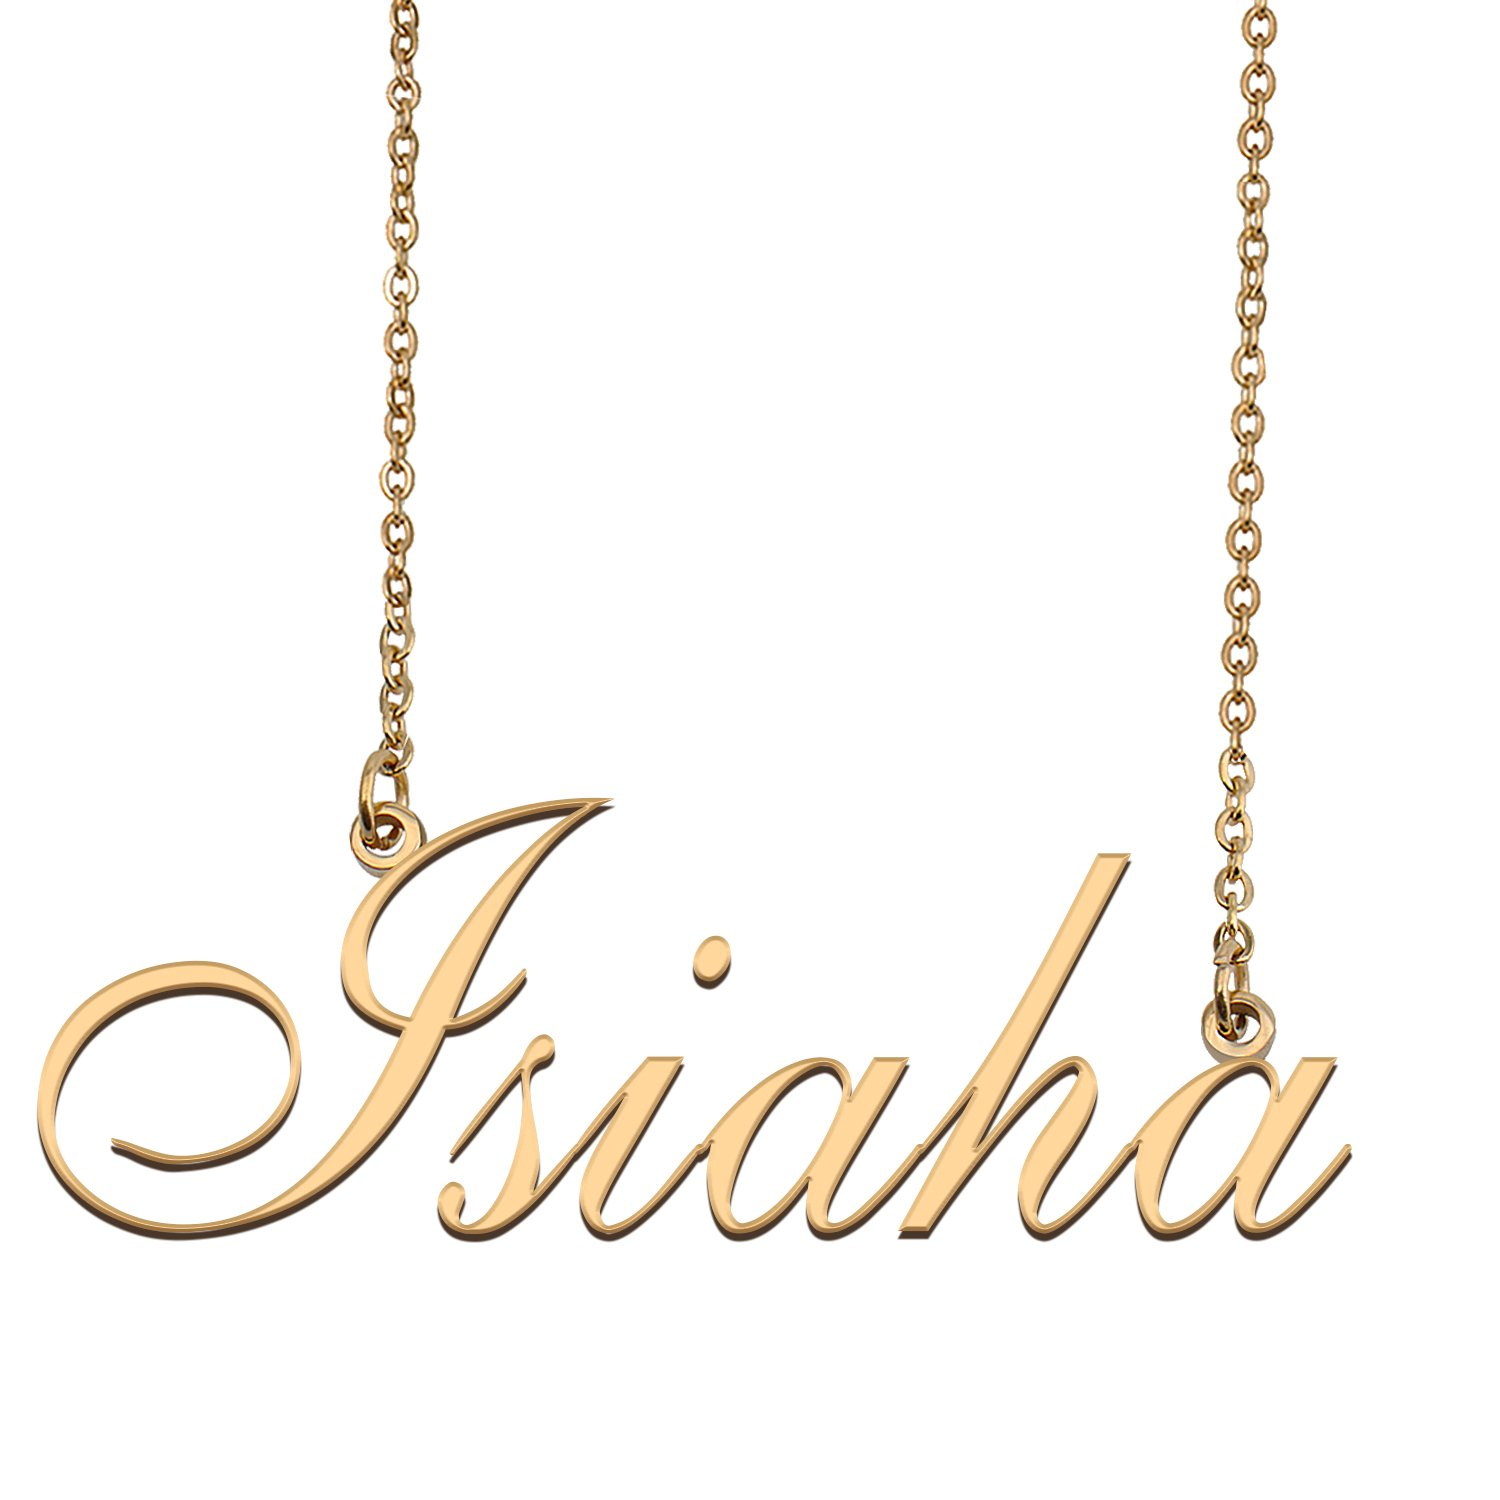 Personalized Custom 18k Gold Plated Any Name Necklace for Women Lovie